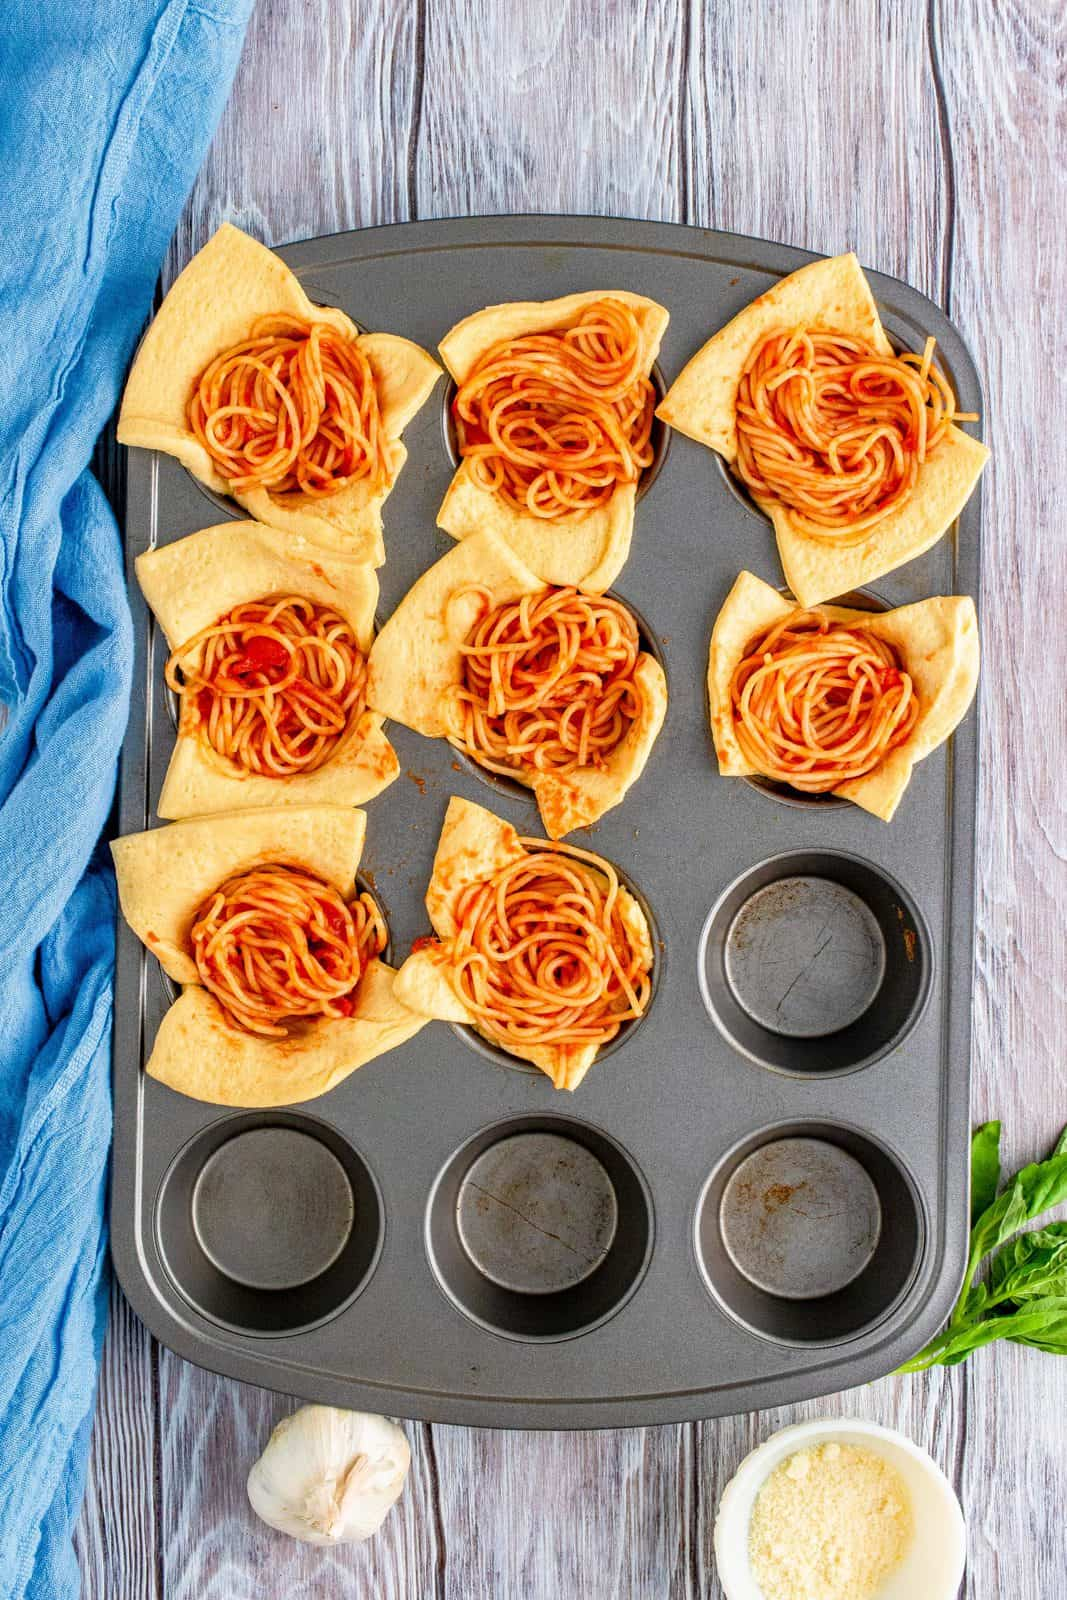 Spaghetti added to crescent squares in muffin tin.